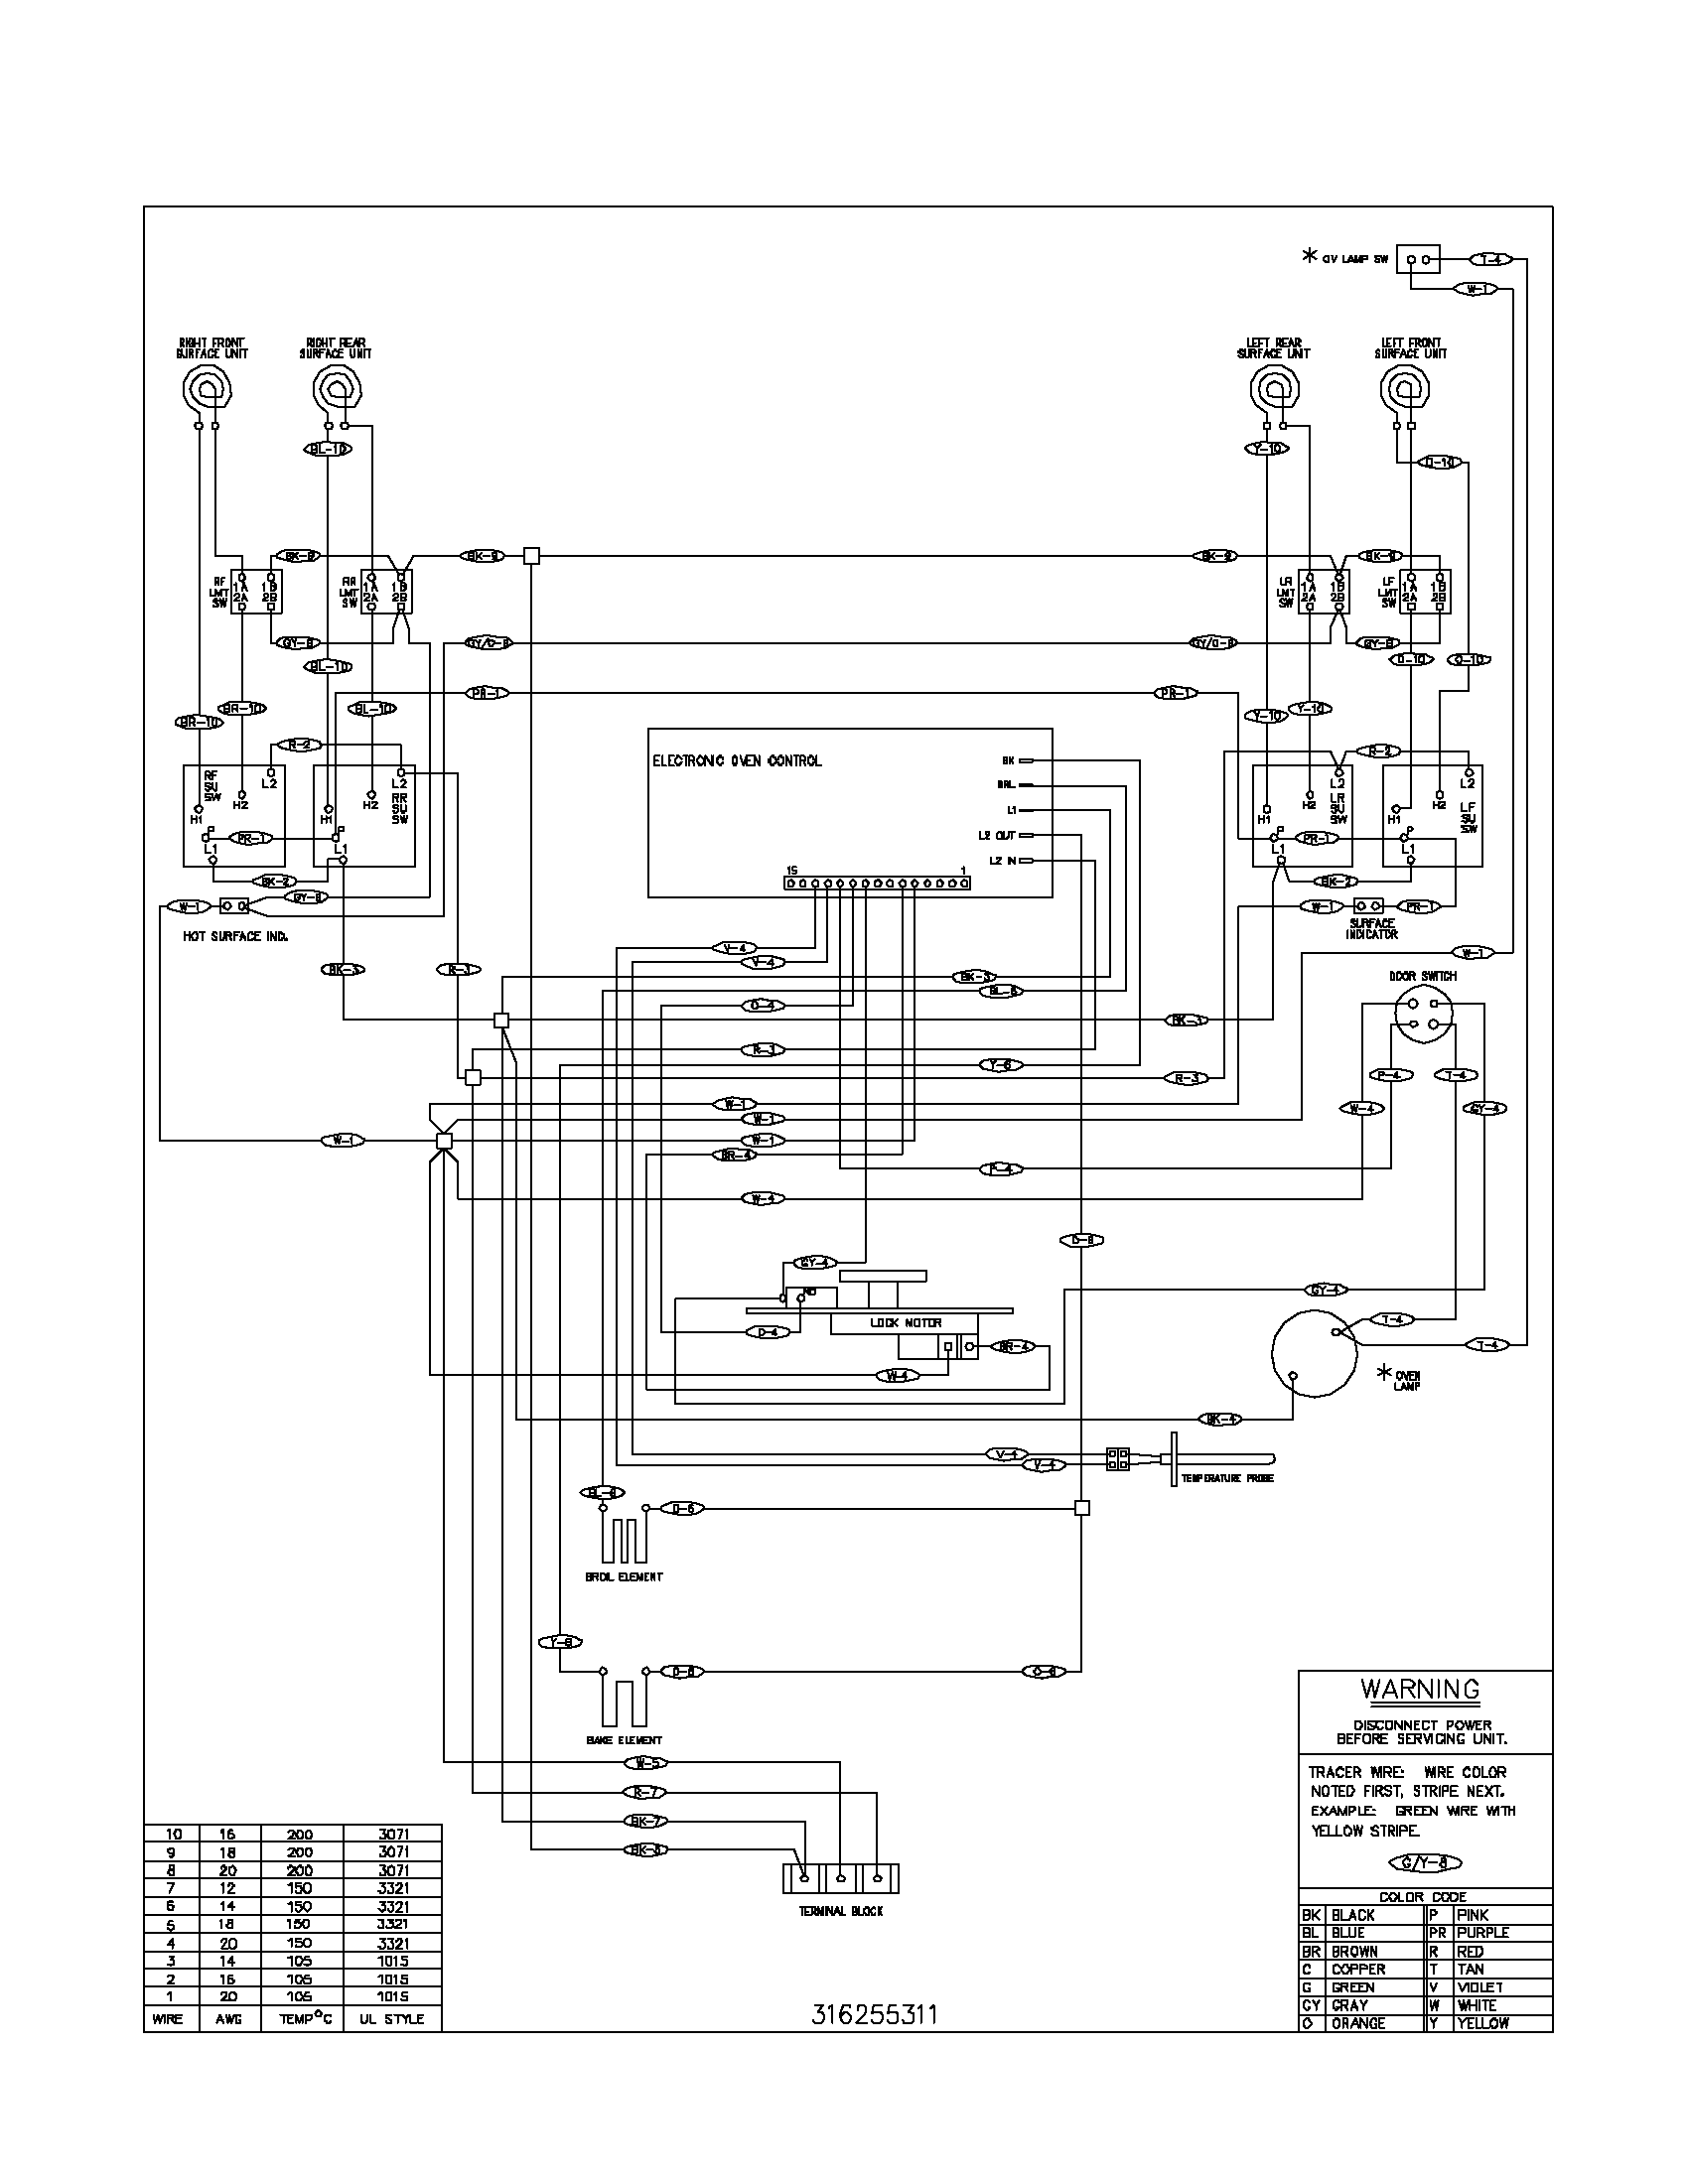 wiring diagram parts frigidaire fef366ccb electric range timer stove clocks and  at suagrazia.org